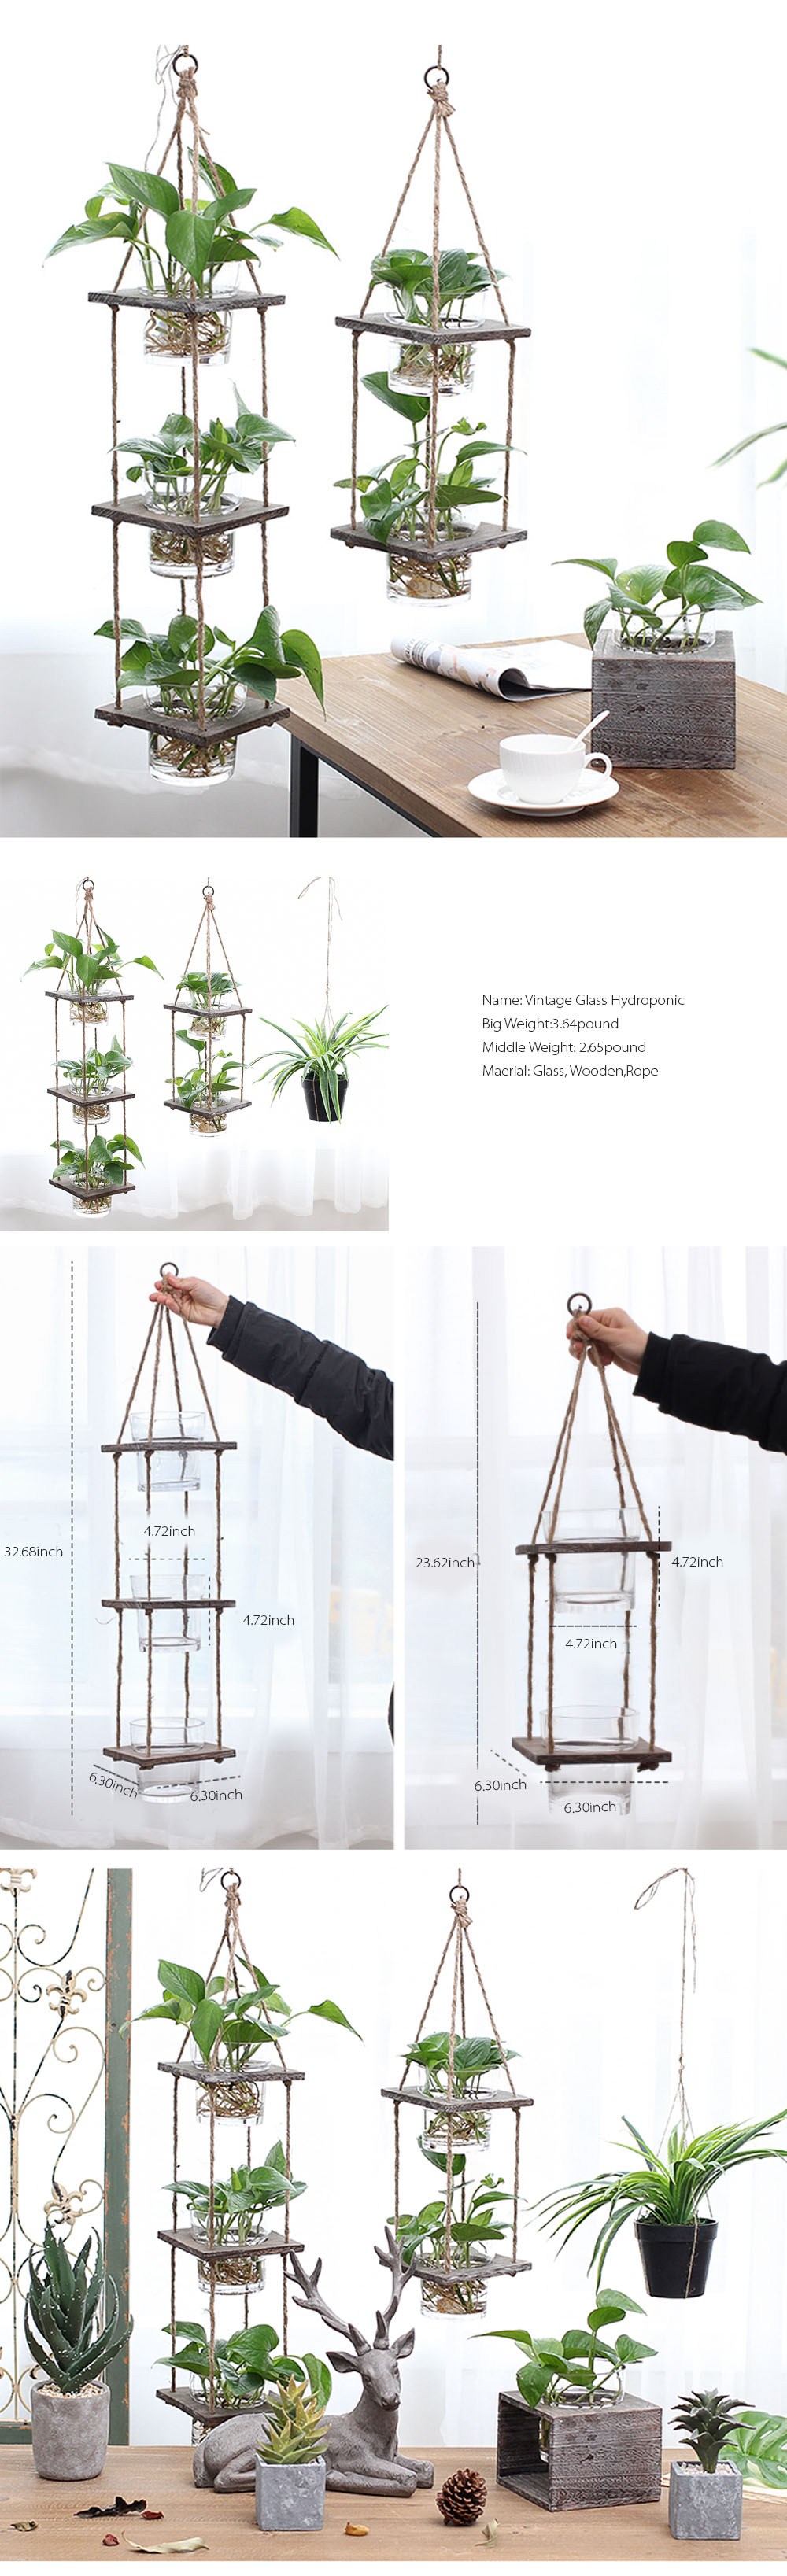 Hanging Wood Planter Hanging Indoor or Outdoor